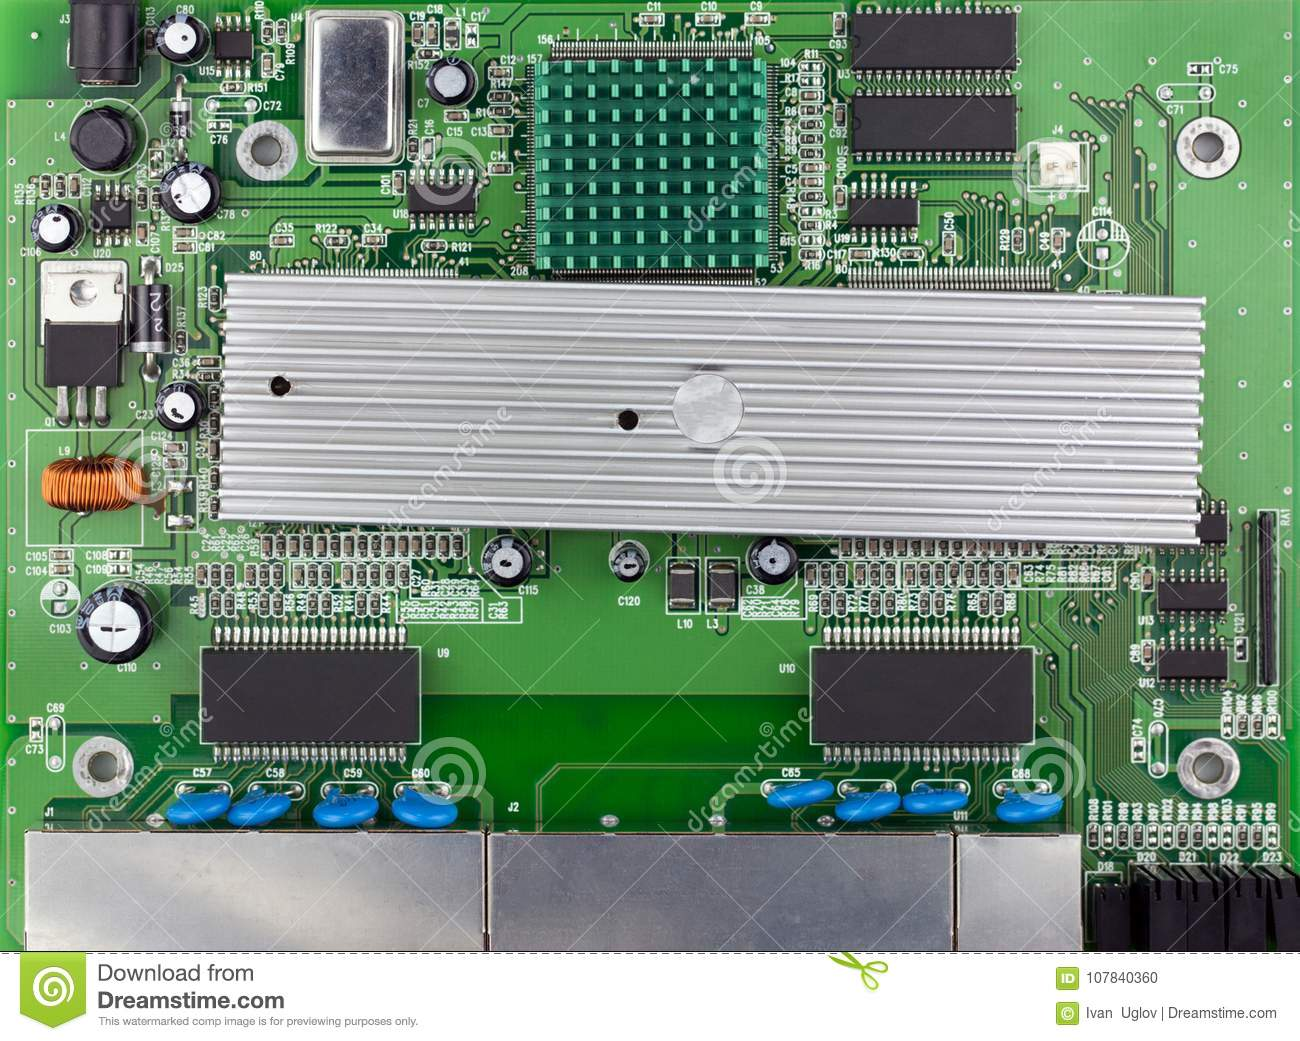 Ethernet Switch Green Board Top View, Green PCB Used Stock Photo ...